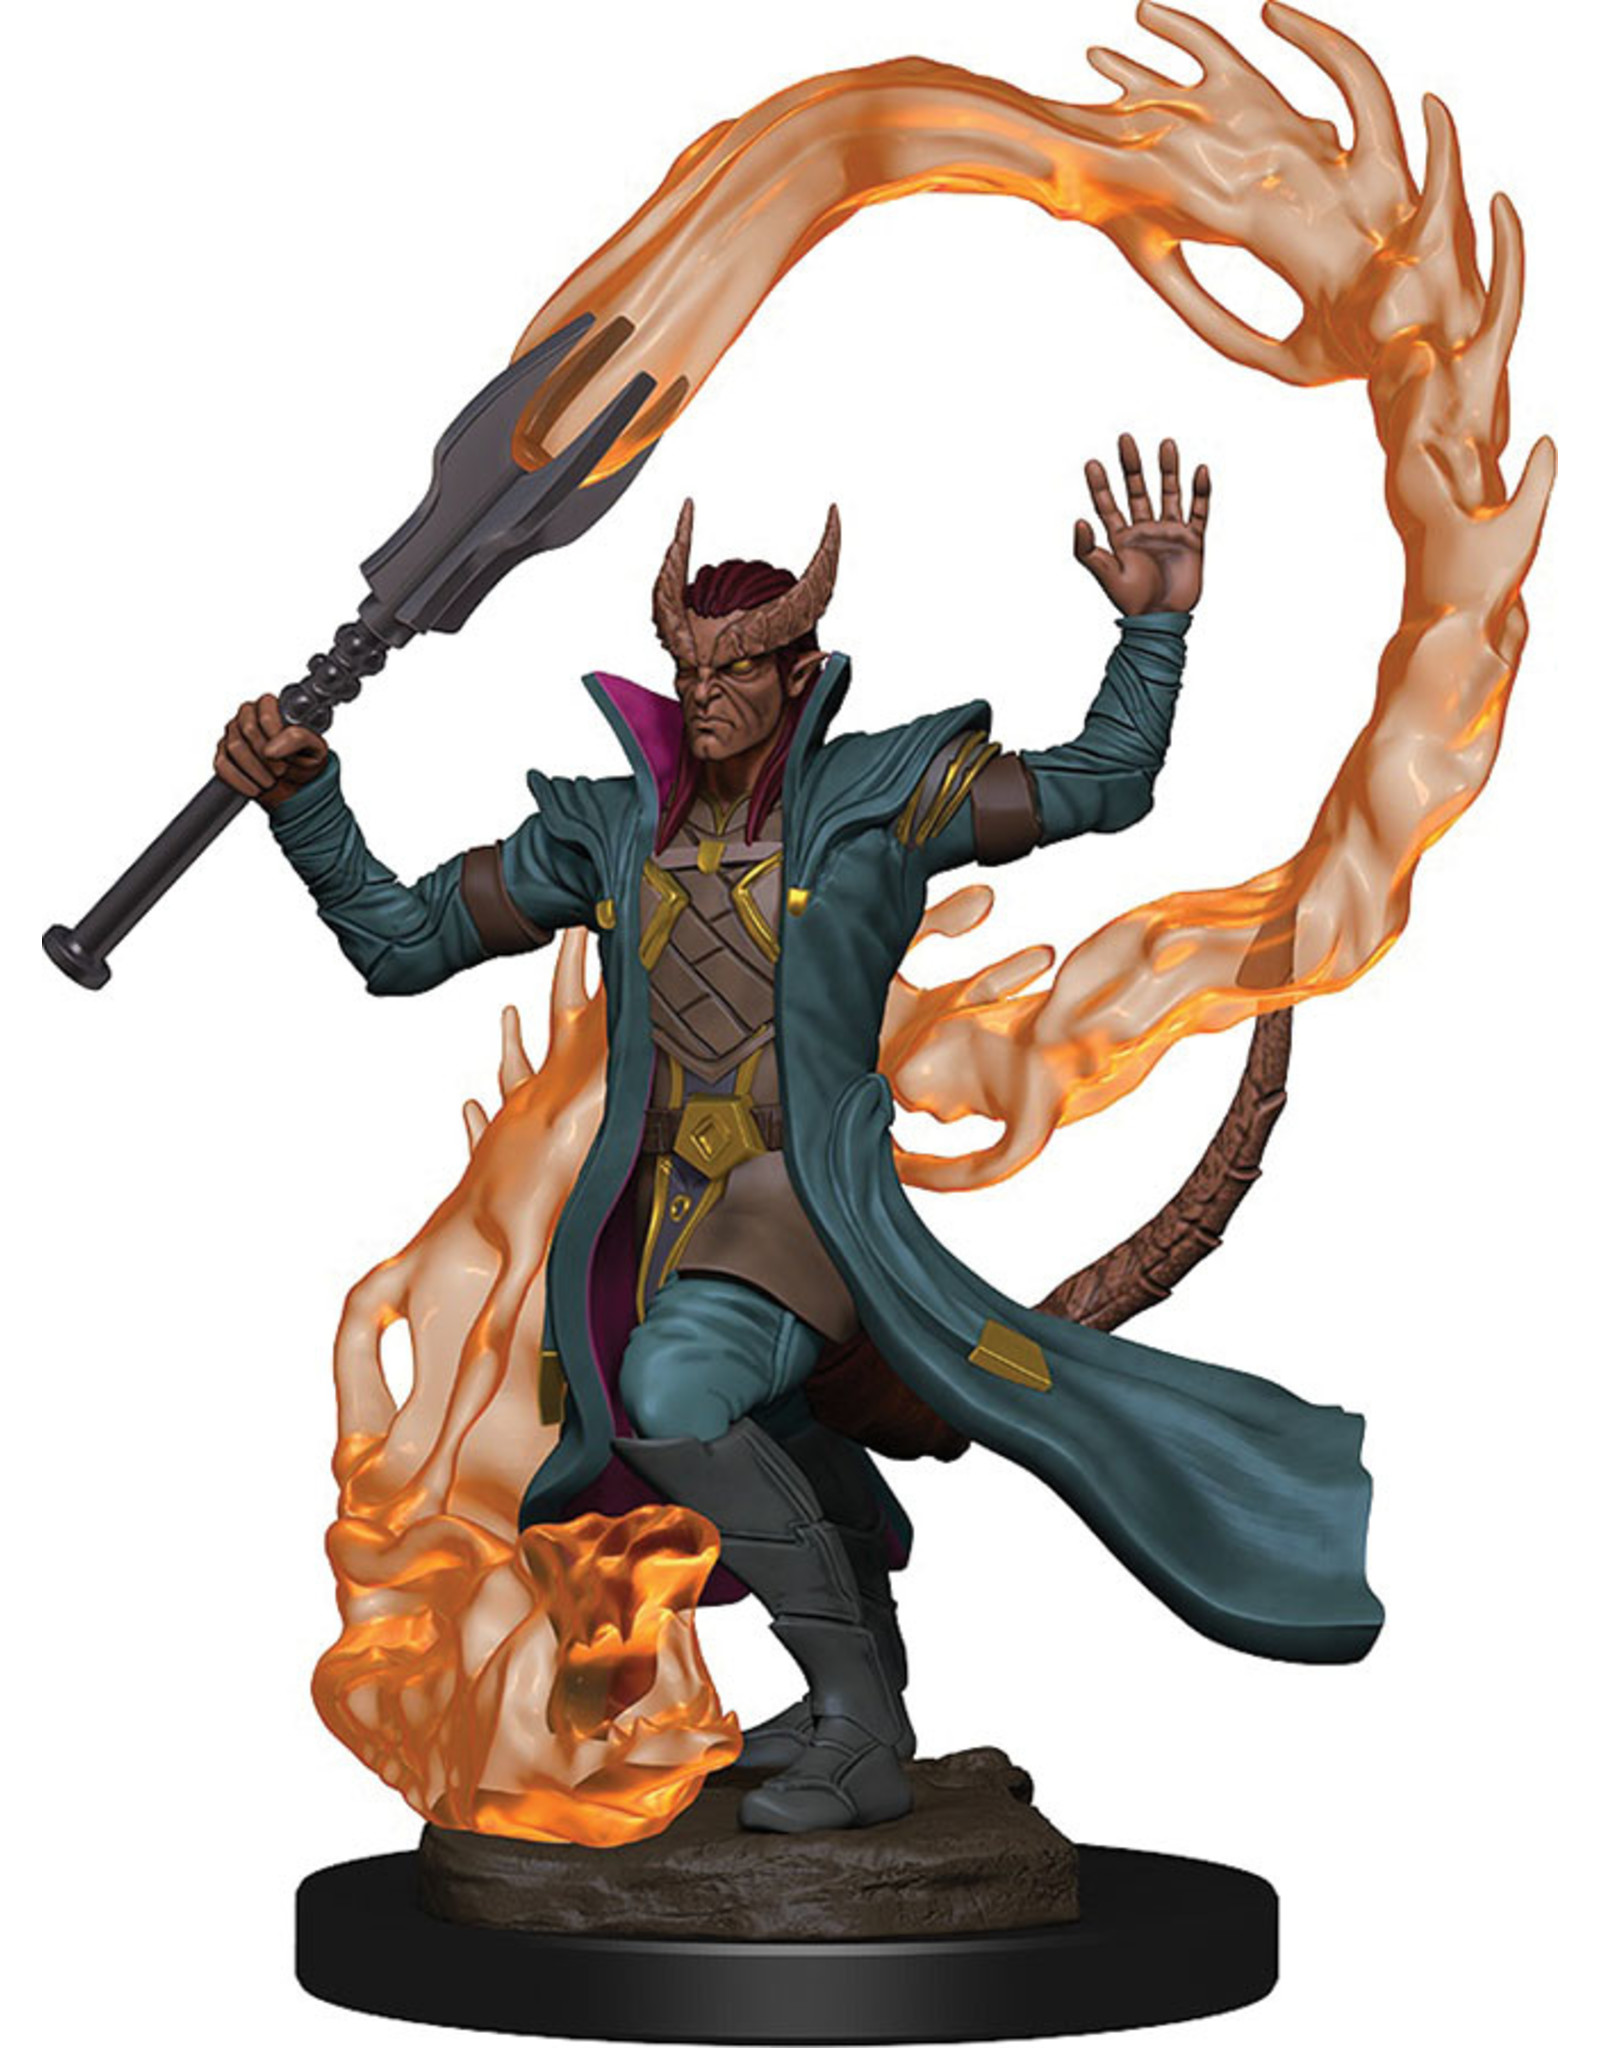 WizKids Dungeons & Dragons Icons of the Realms Premium Figures: W1 Tiefling Male Sorcerer